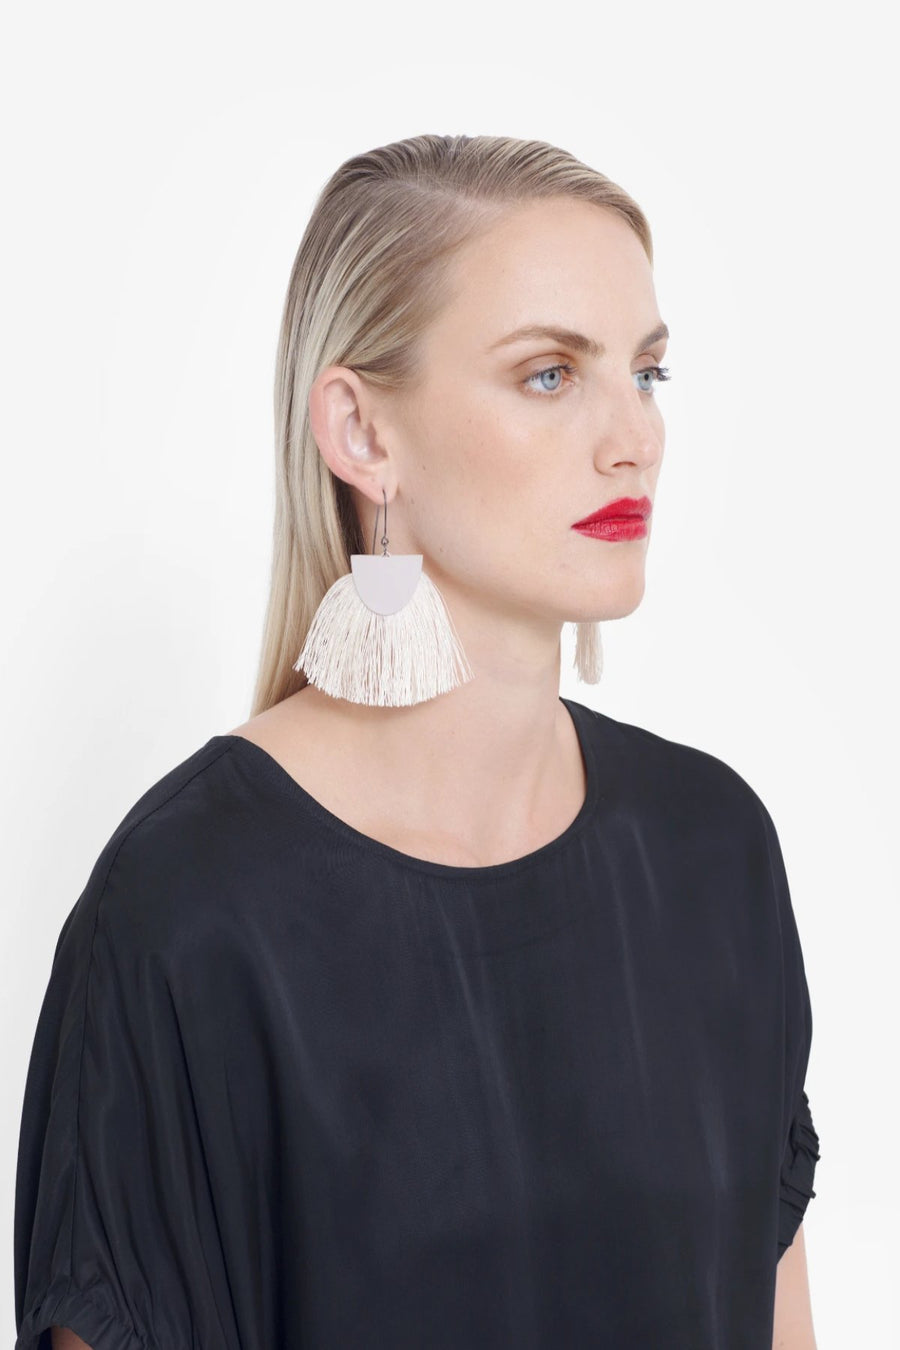 Holm Tassel Earrings - Pink - Shop Online At Mookah - mookah.com.au